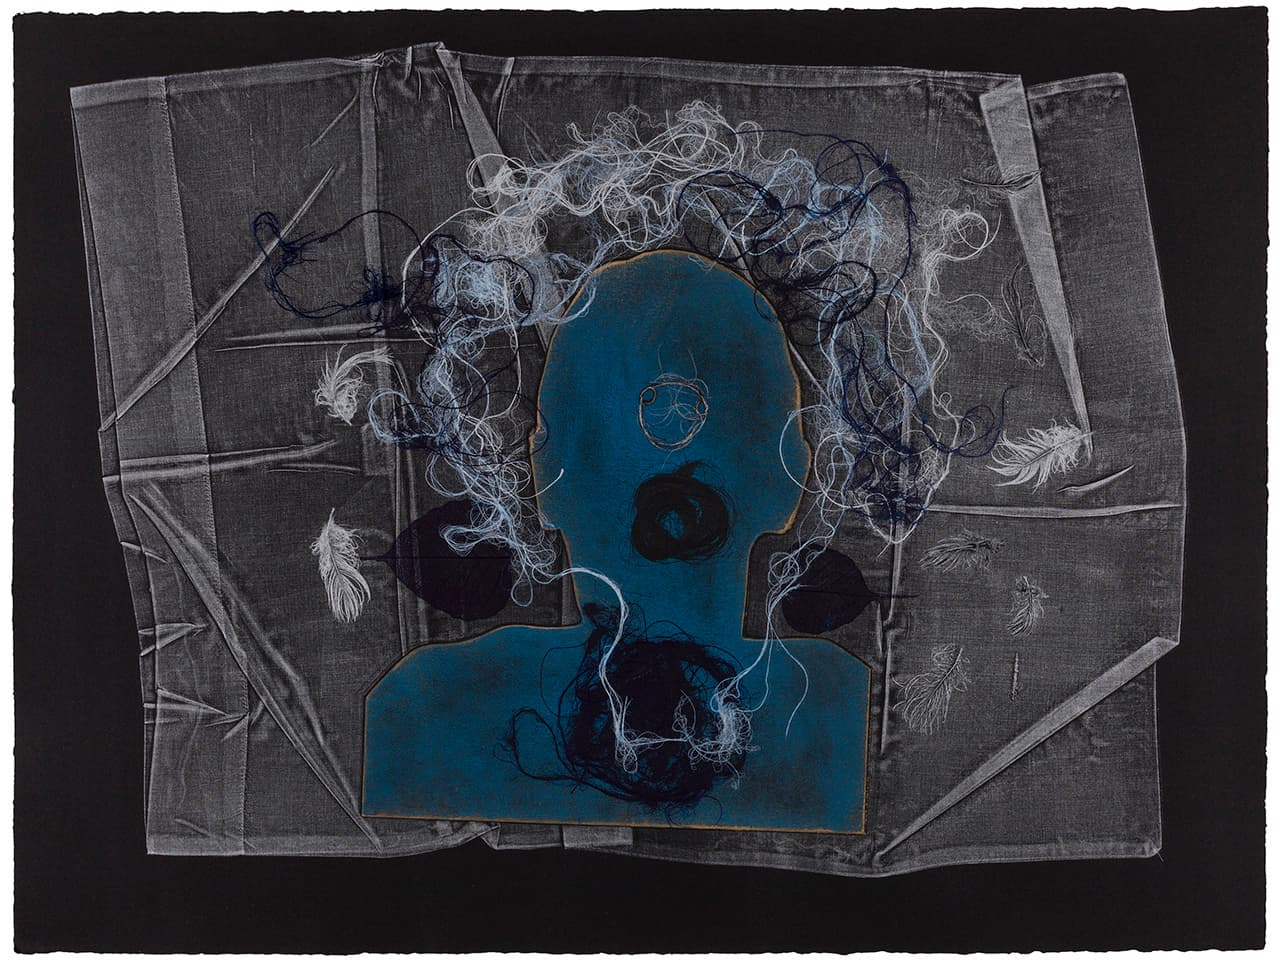 <strong>The Dark Self 14</strong>, Susan Aldworth, monoprint, 56 x 76 cms, 2017. Photograph by Peter Abrahams.